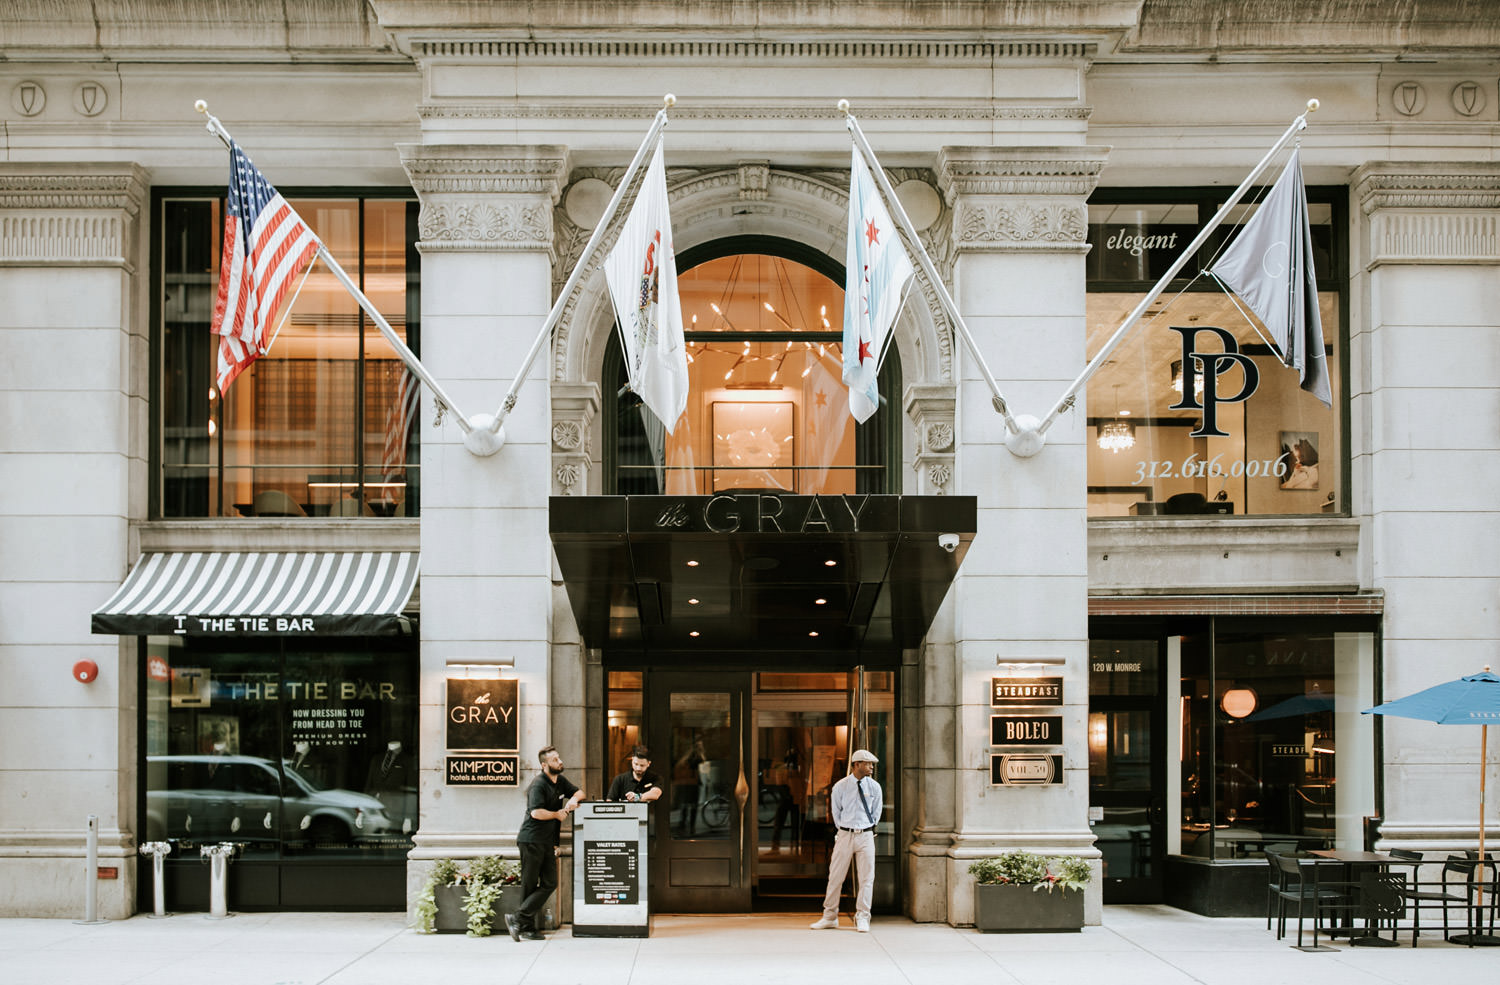 The view of the front of the Hotel Gray in Chicago on the